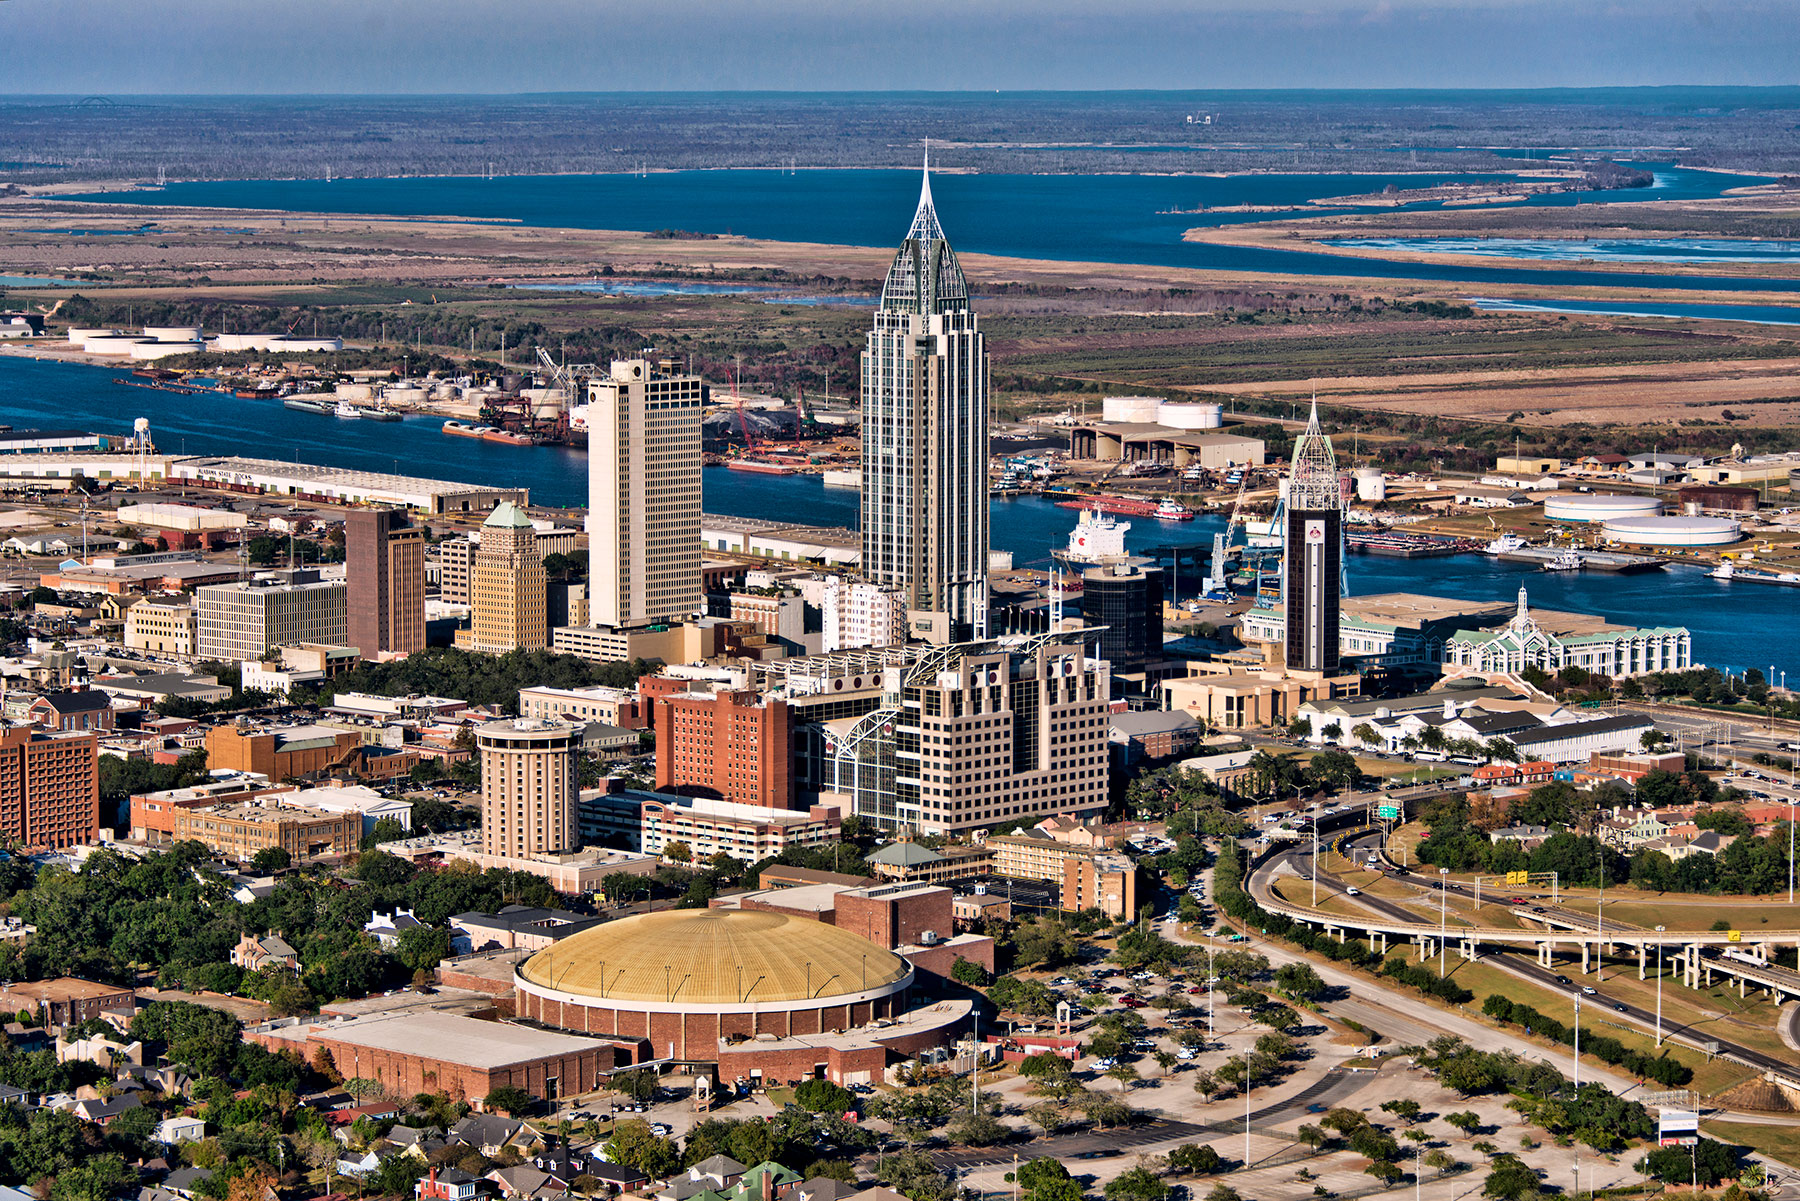 Mobil L Implementation Progress In Mobile, Alabama – Planning Next